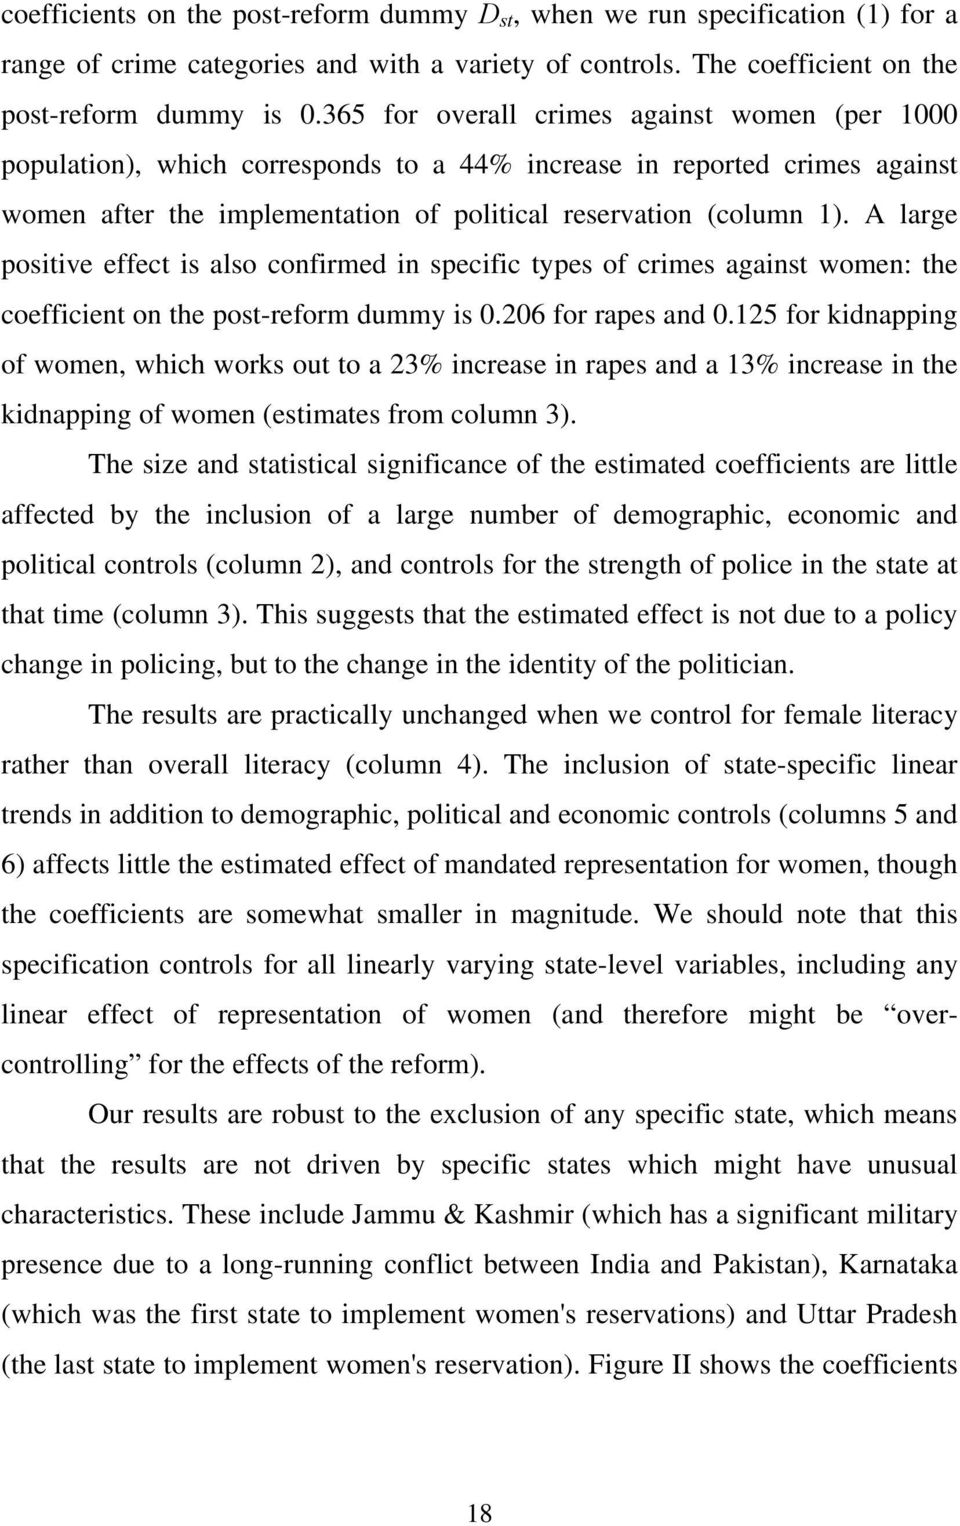 A large positive effect is also confirmed in specific types of crimes against women: the coefficient on the post-reform dummy is 0.206 for rapes and 0.